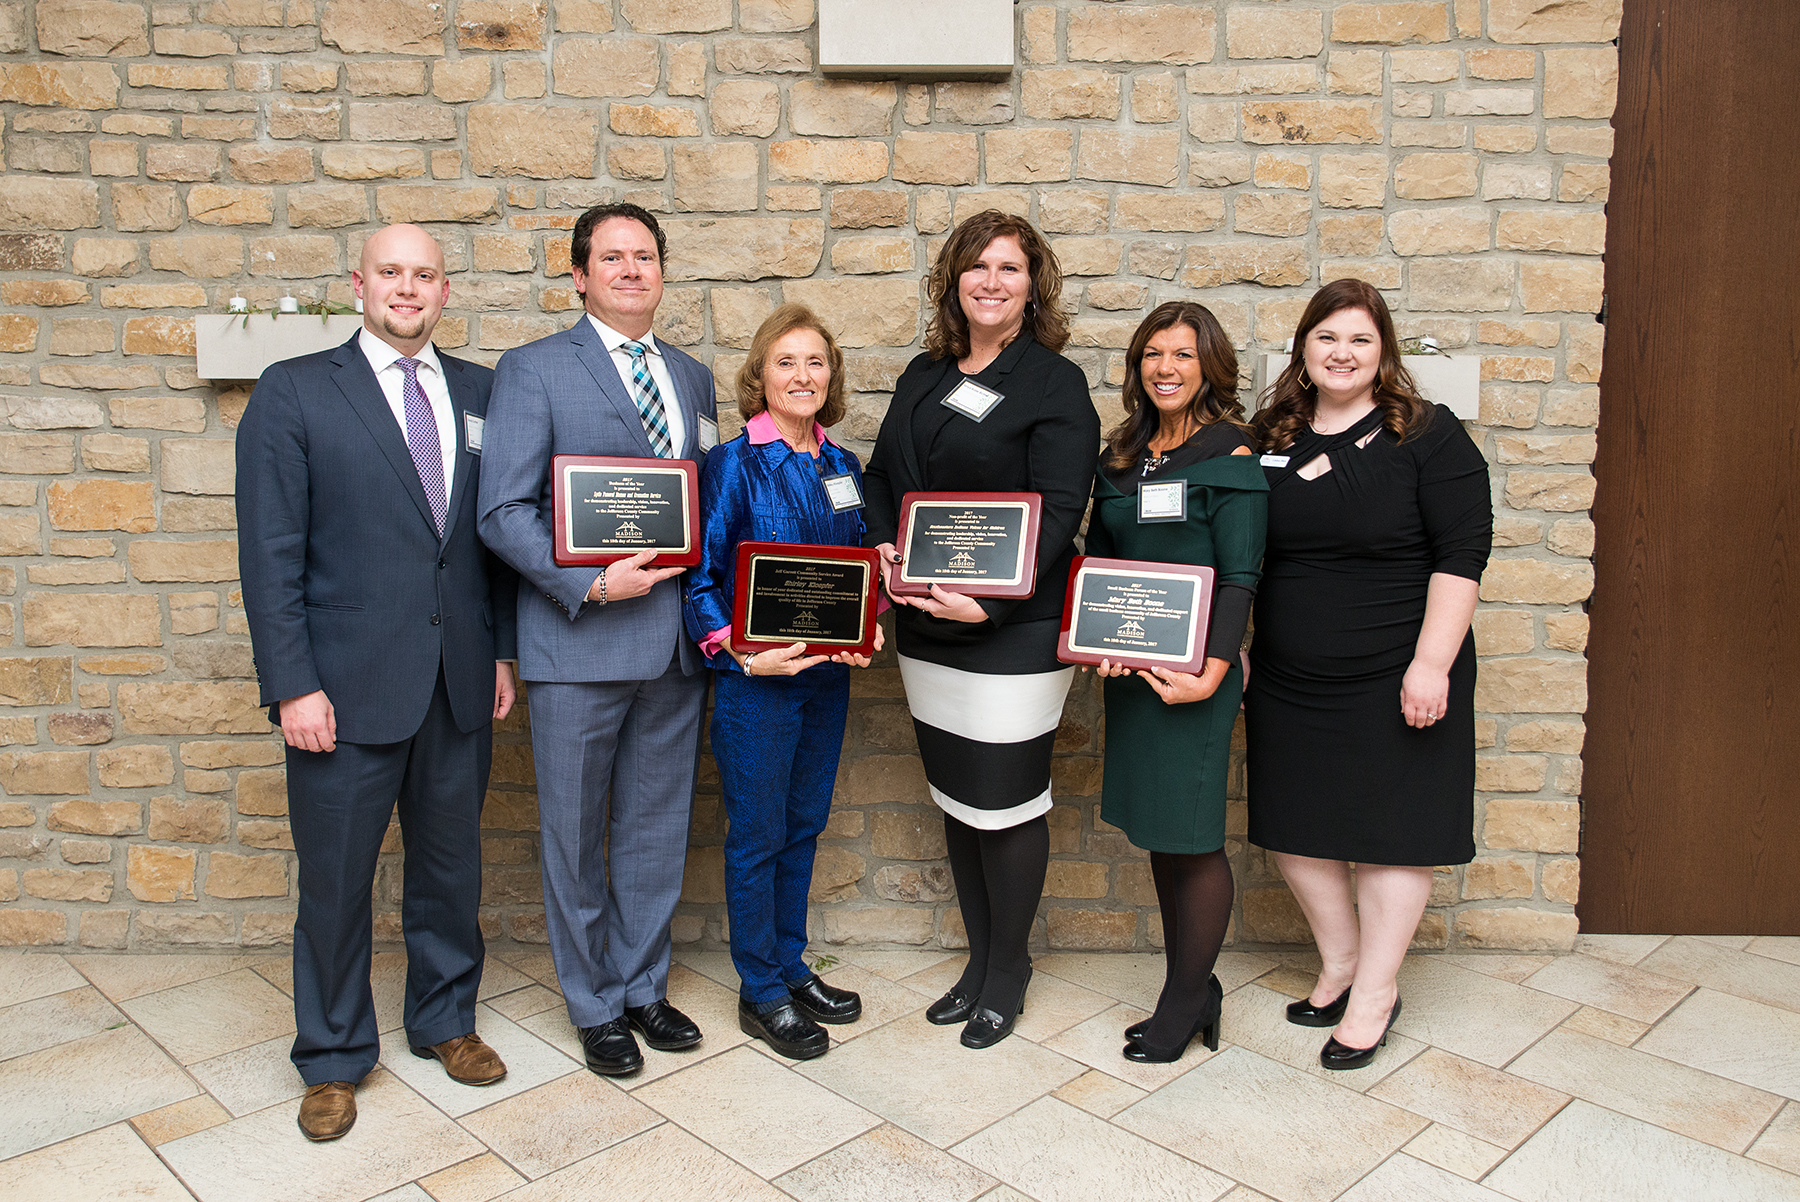 Community Service, Business of the Year, Nonprofit of the Year, and Small Business Person of the Year - Madison, Indiana Chamber